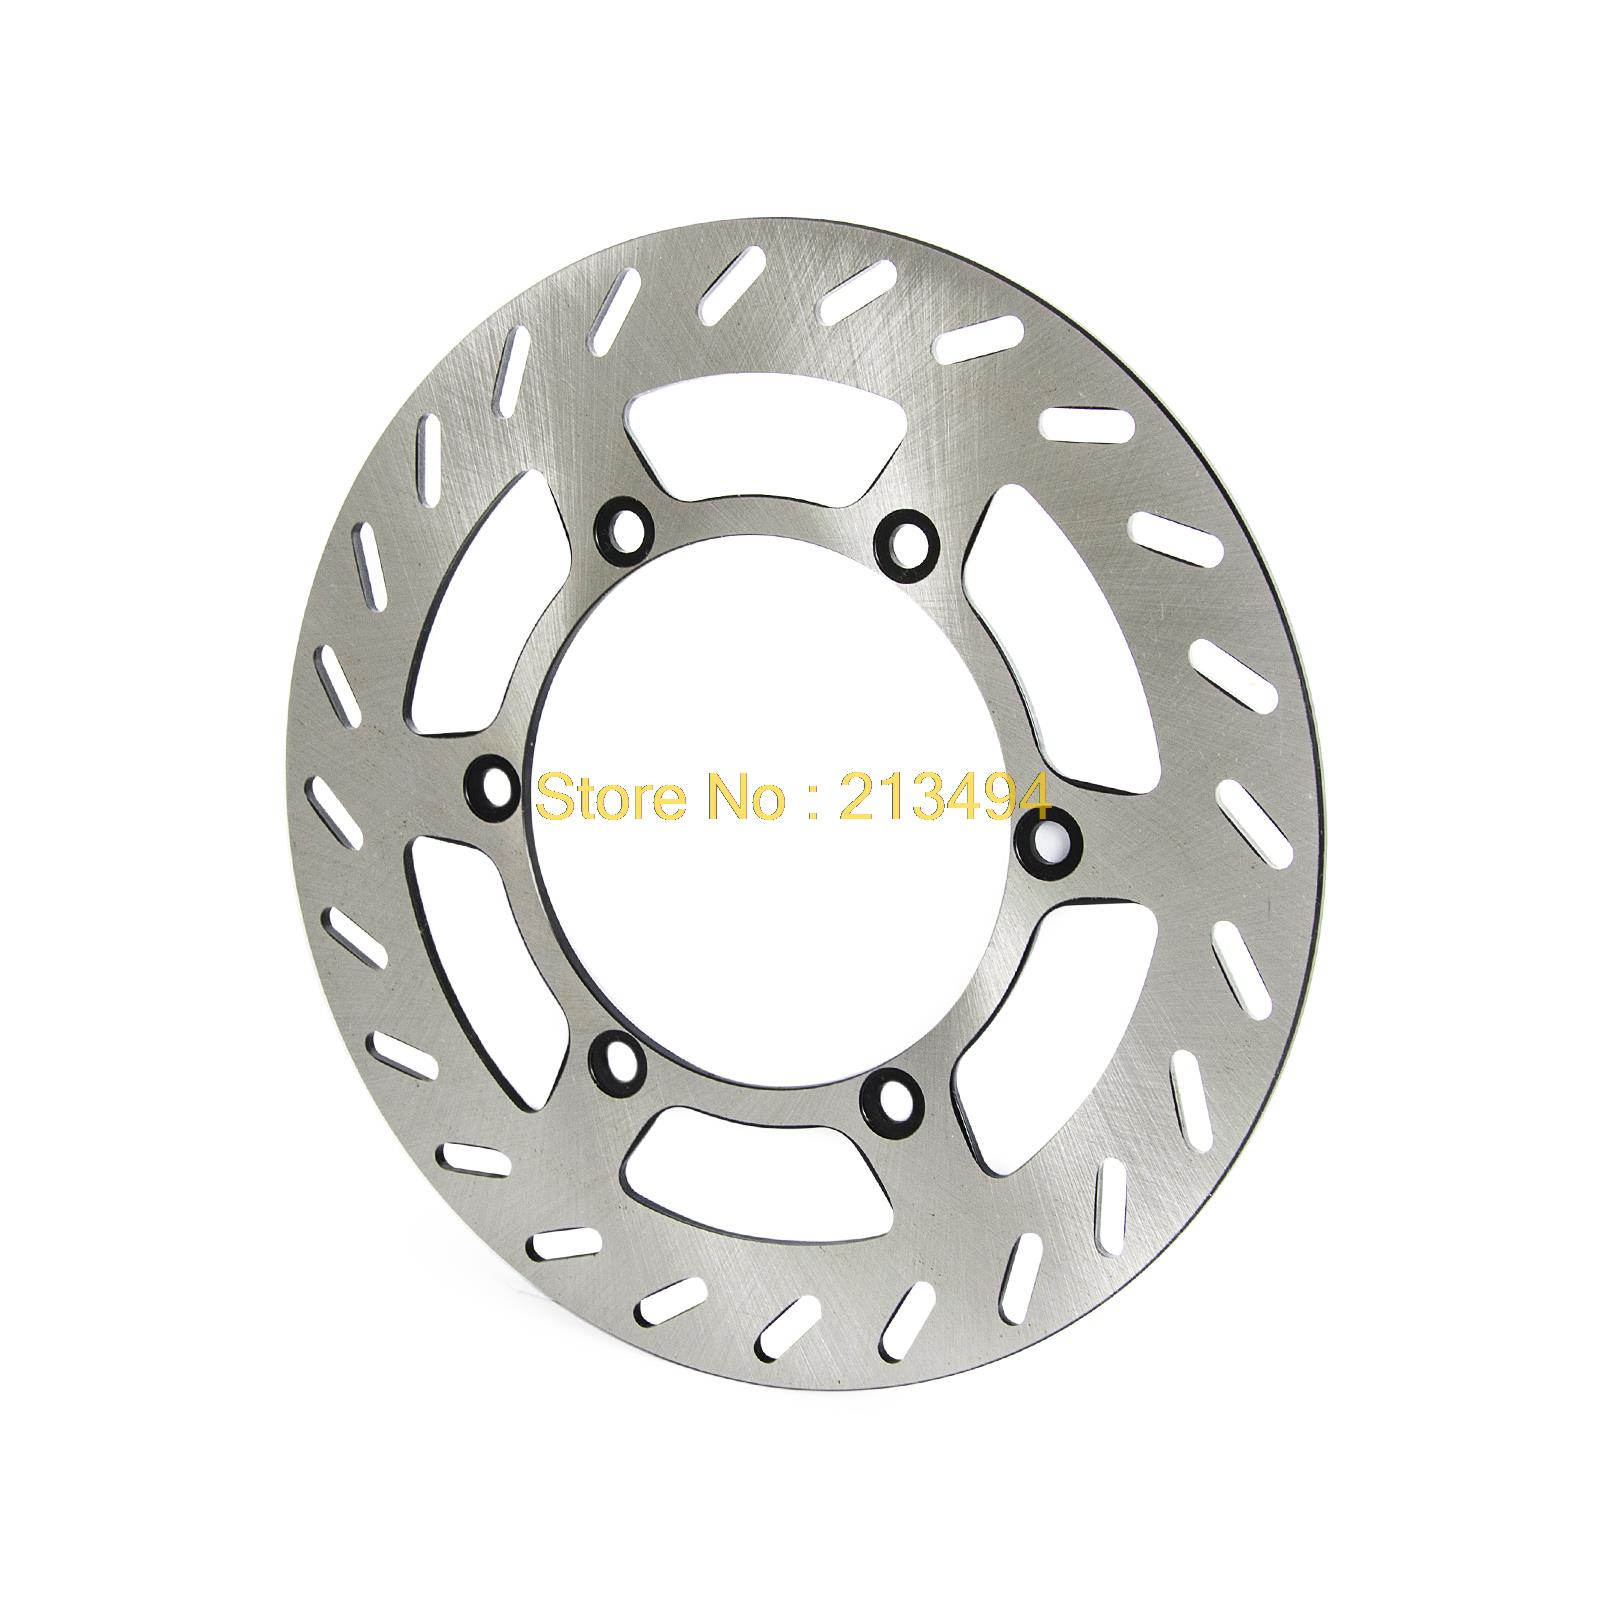 new motorcycle front rotor brake disc for yamaha dt tw xyz yz st xt Yamaha 500 Single new motorcycle front rotor brake disc for yamaha dt tw xyz yz st xt tt in discs rotors hardware from automobiles motorcycles on aliexpress